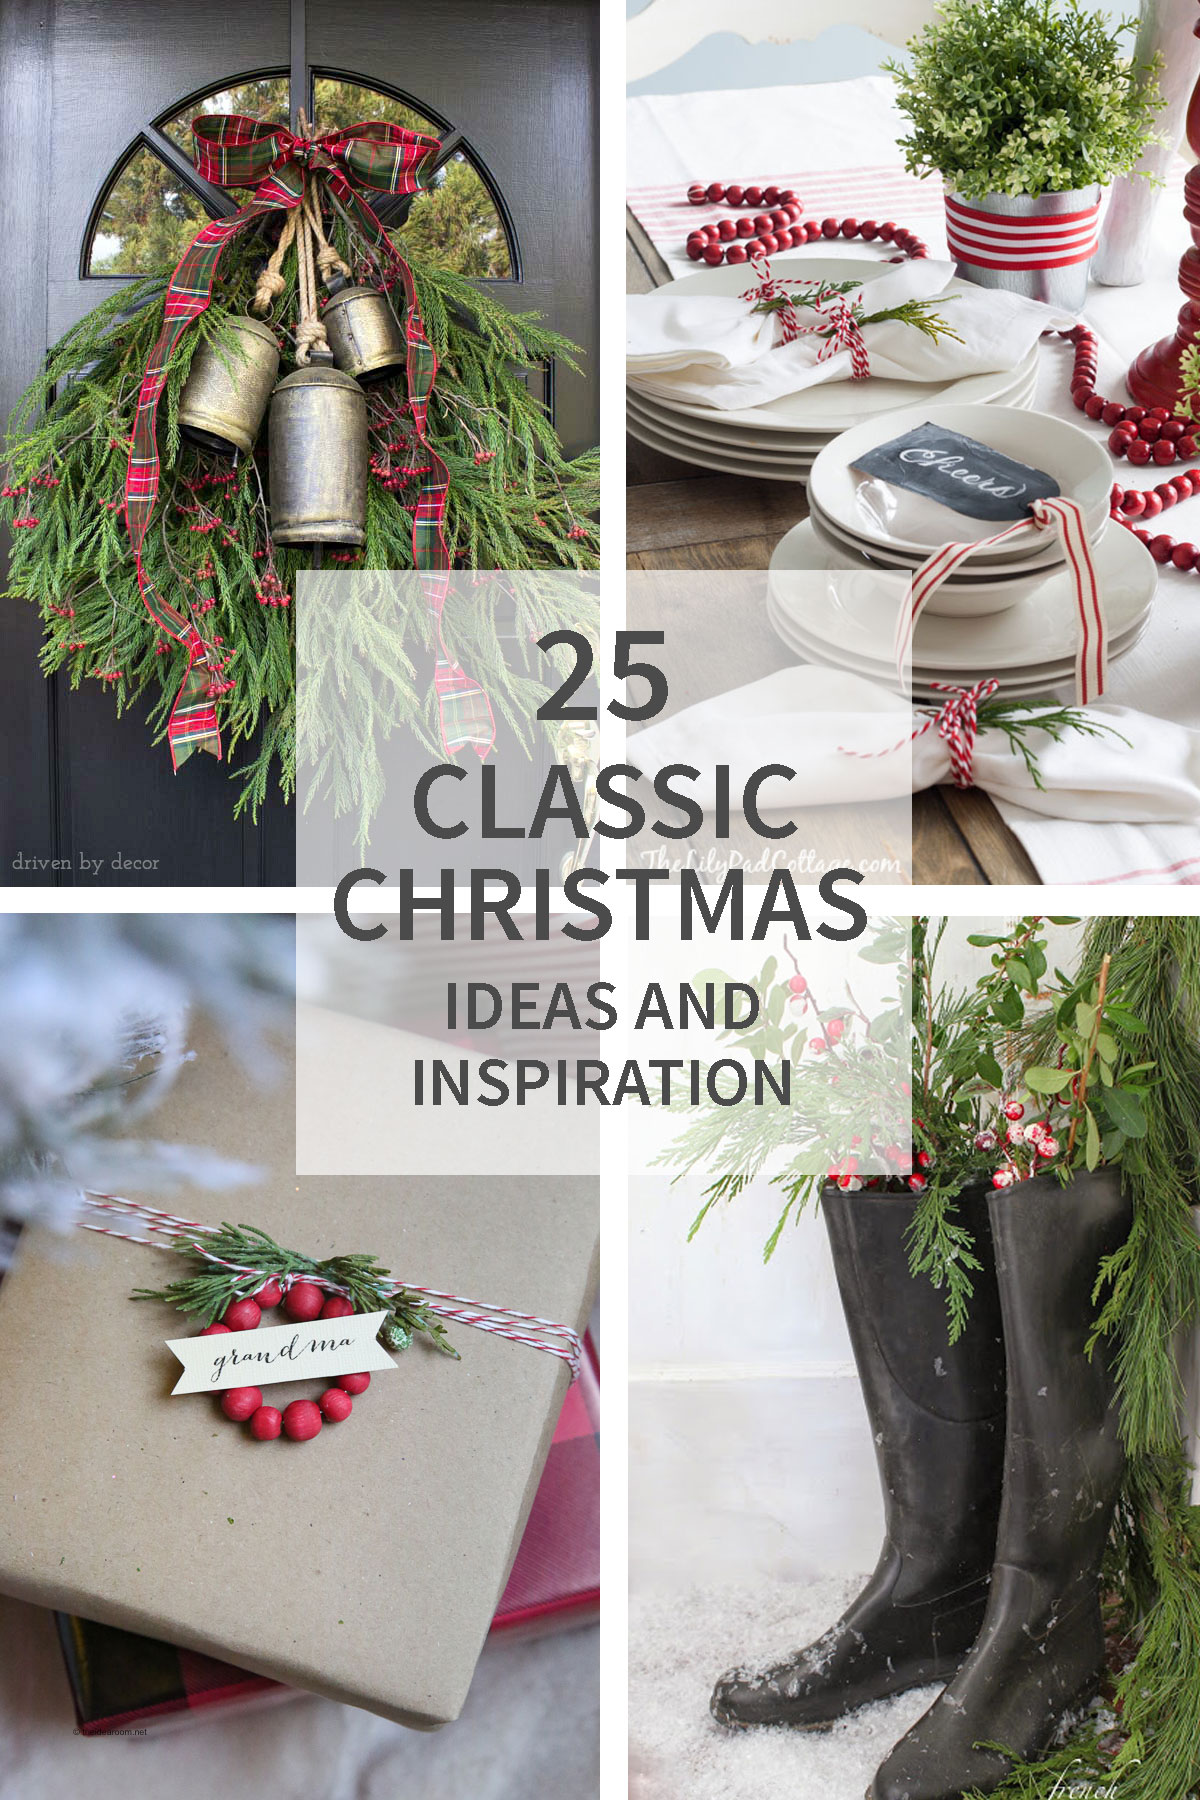 25 Classic Christmas Ideas and Inspiration